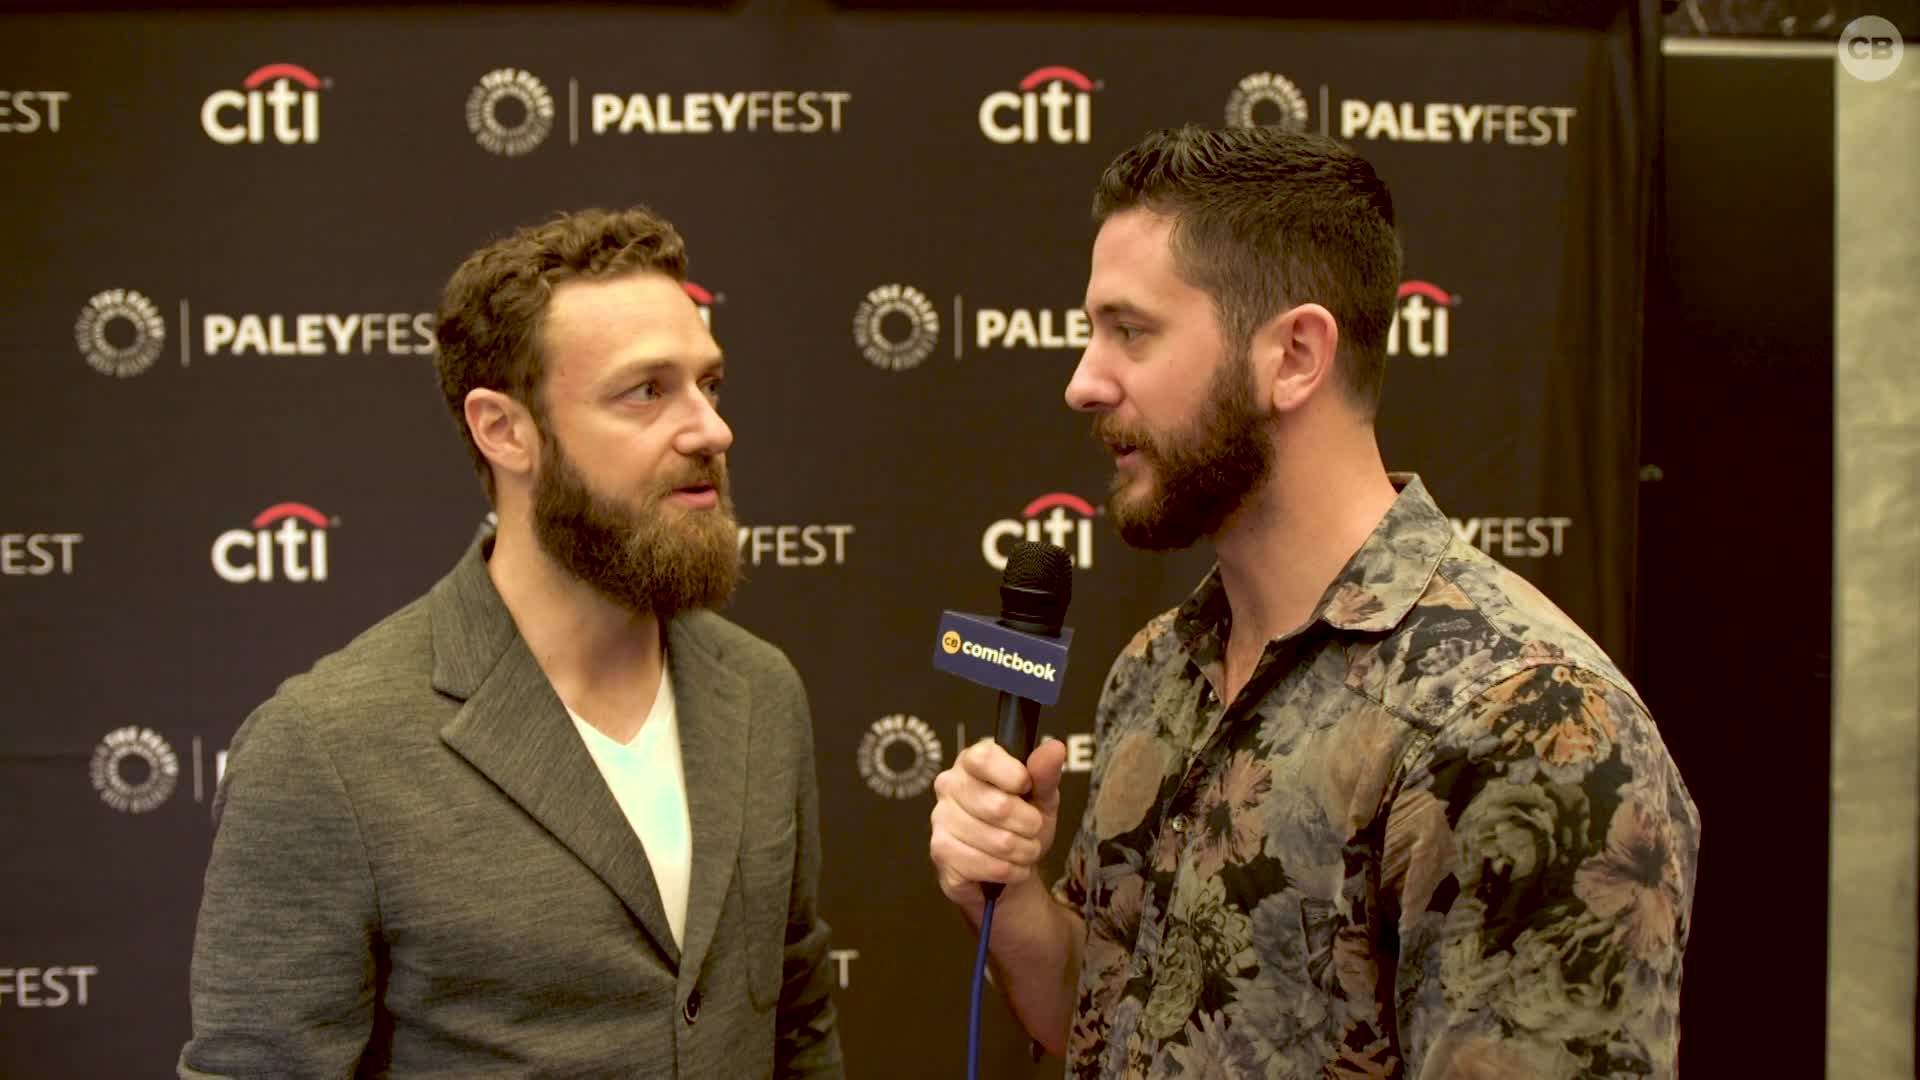 Ross Marquand - NYCC 2019 Exclusive Interview screen capture